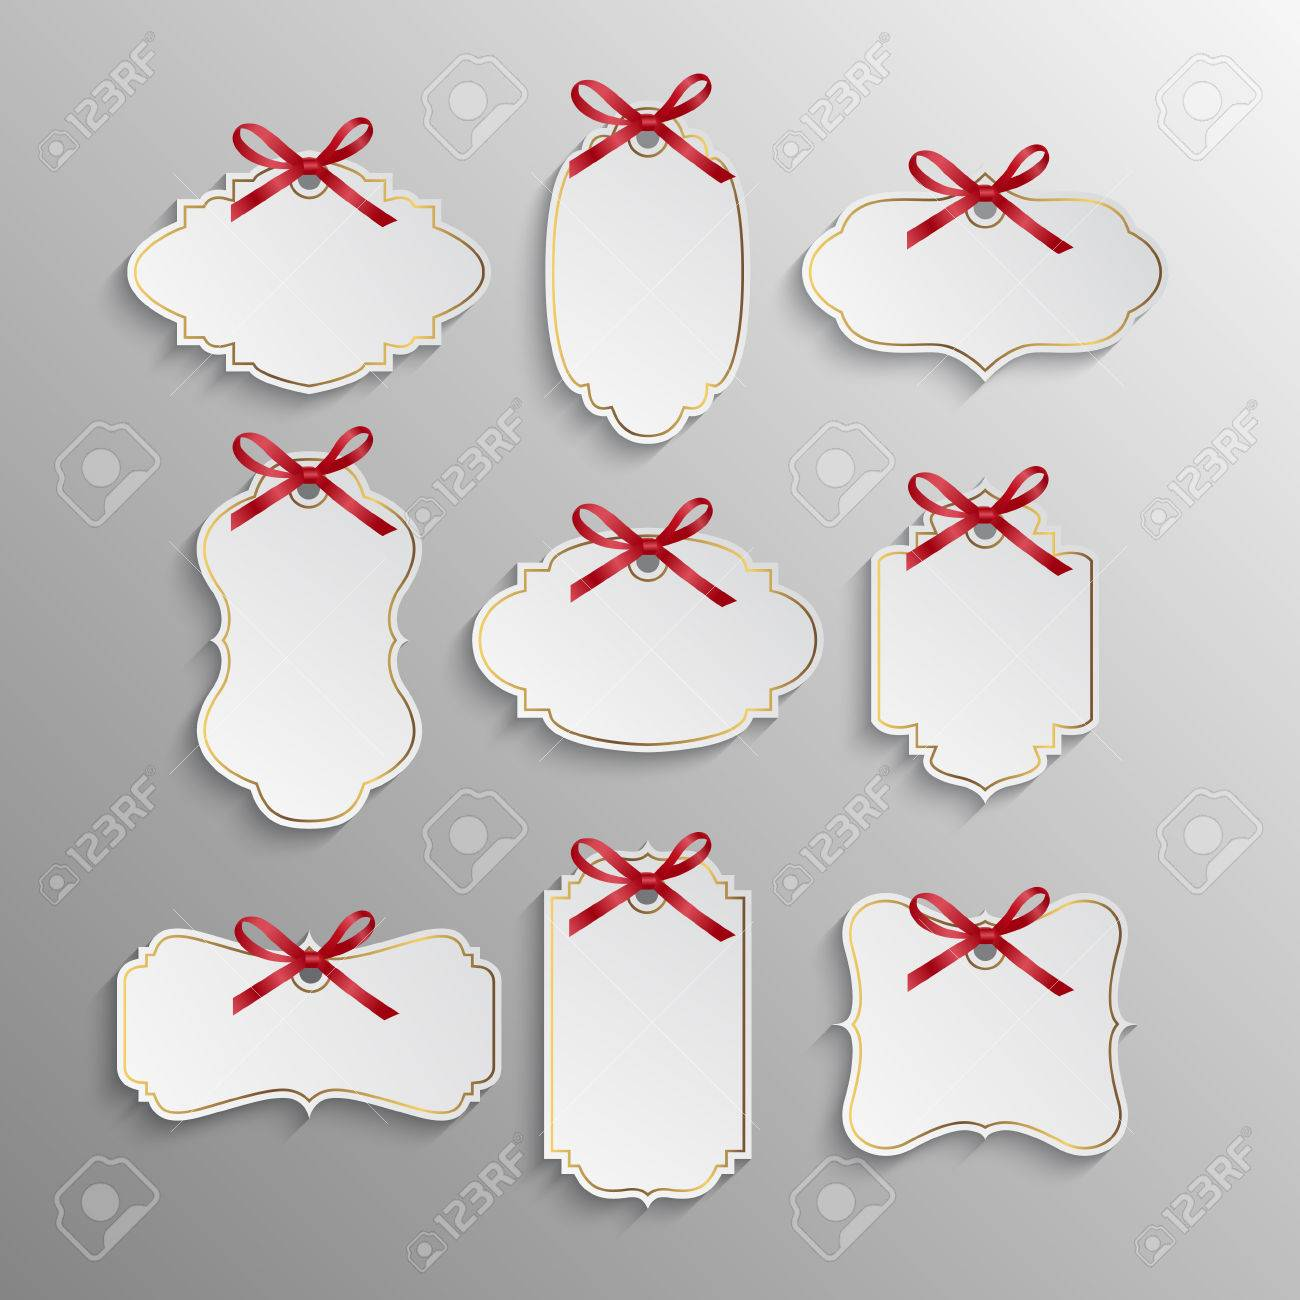 Set of elegant realistic white paper tags with red bows and golden elements. Vector EPS10 illustration. - 45322713